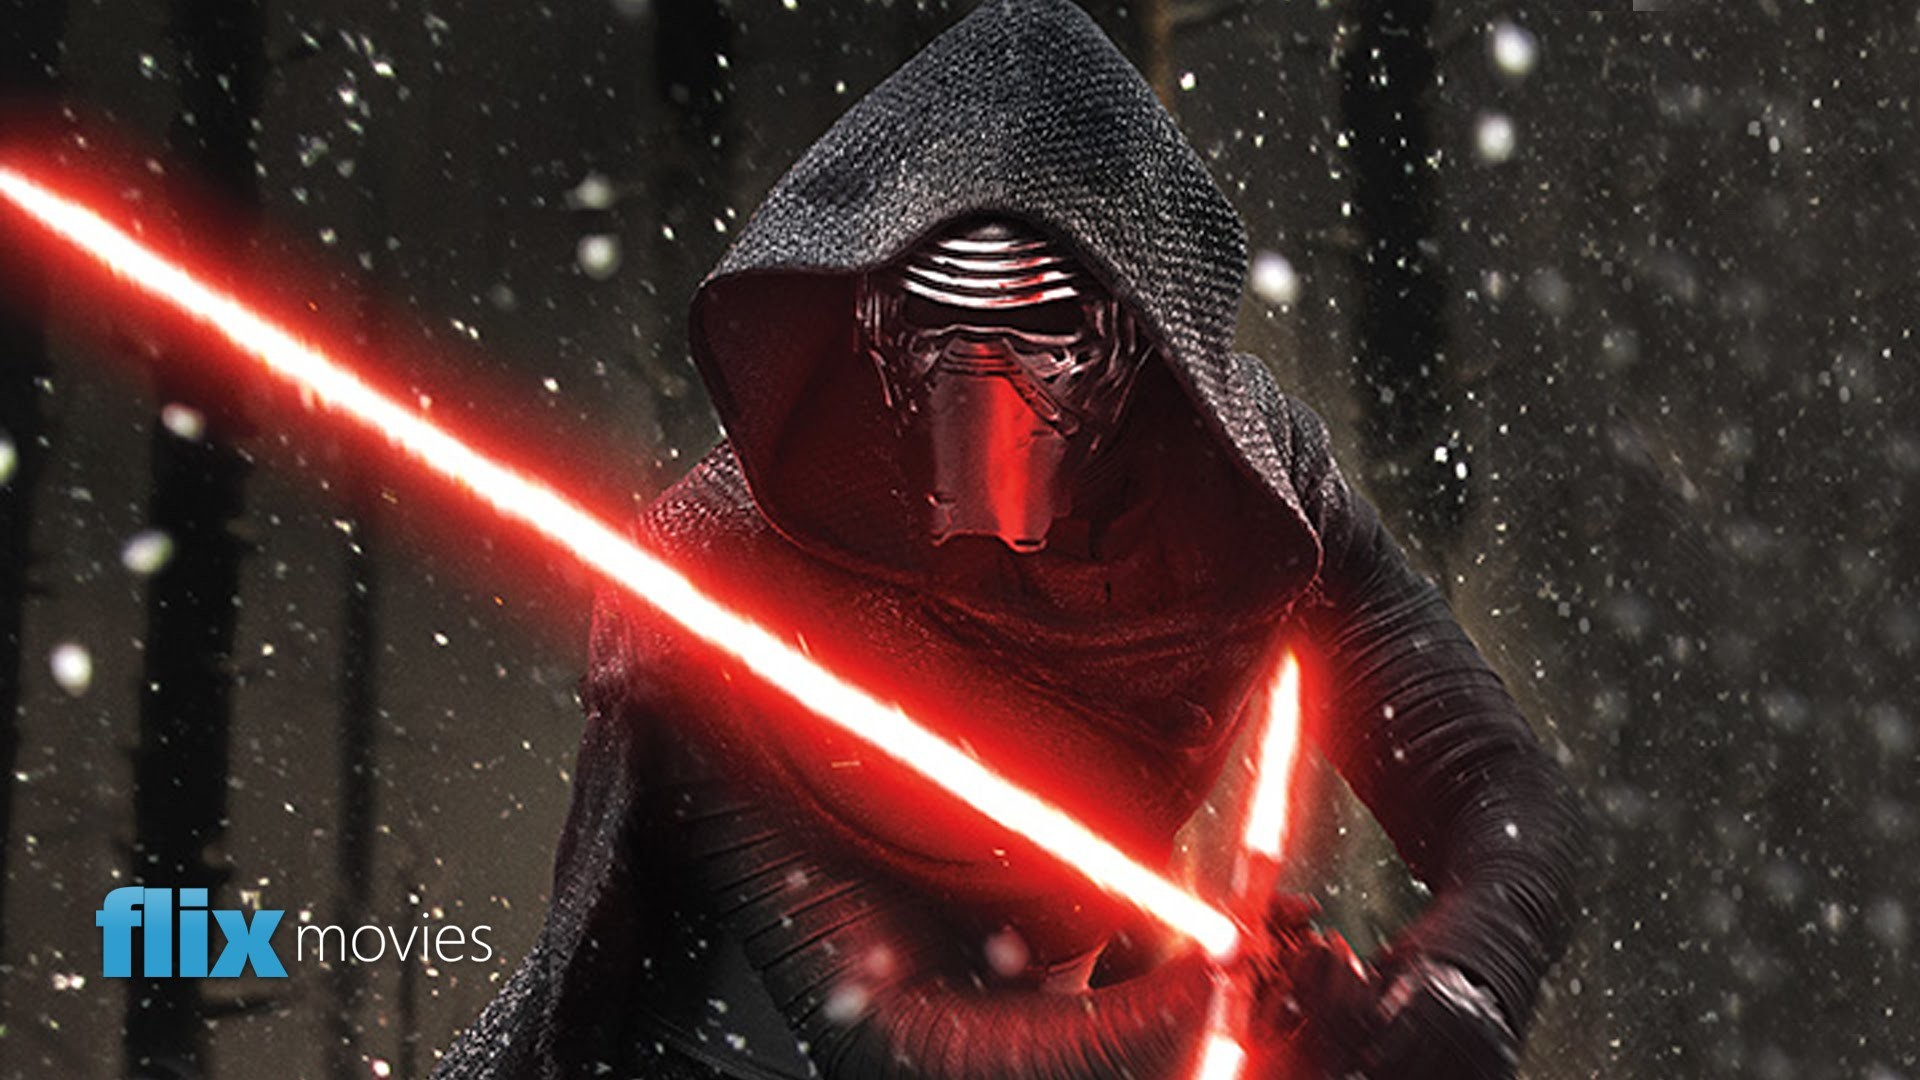 Star Wars: The Force Awakens – The First Order